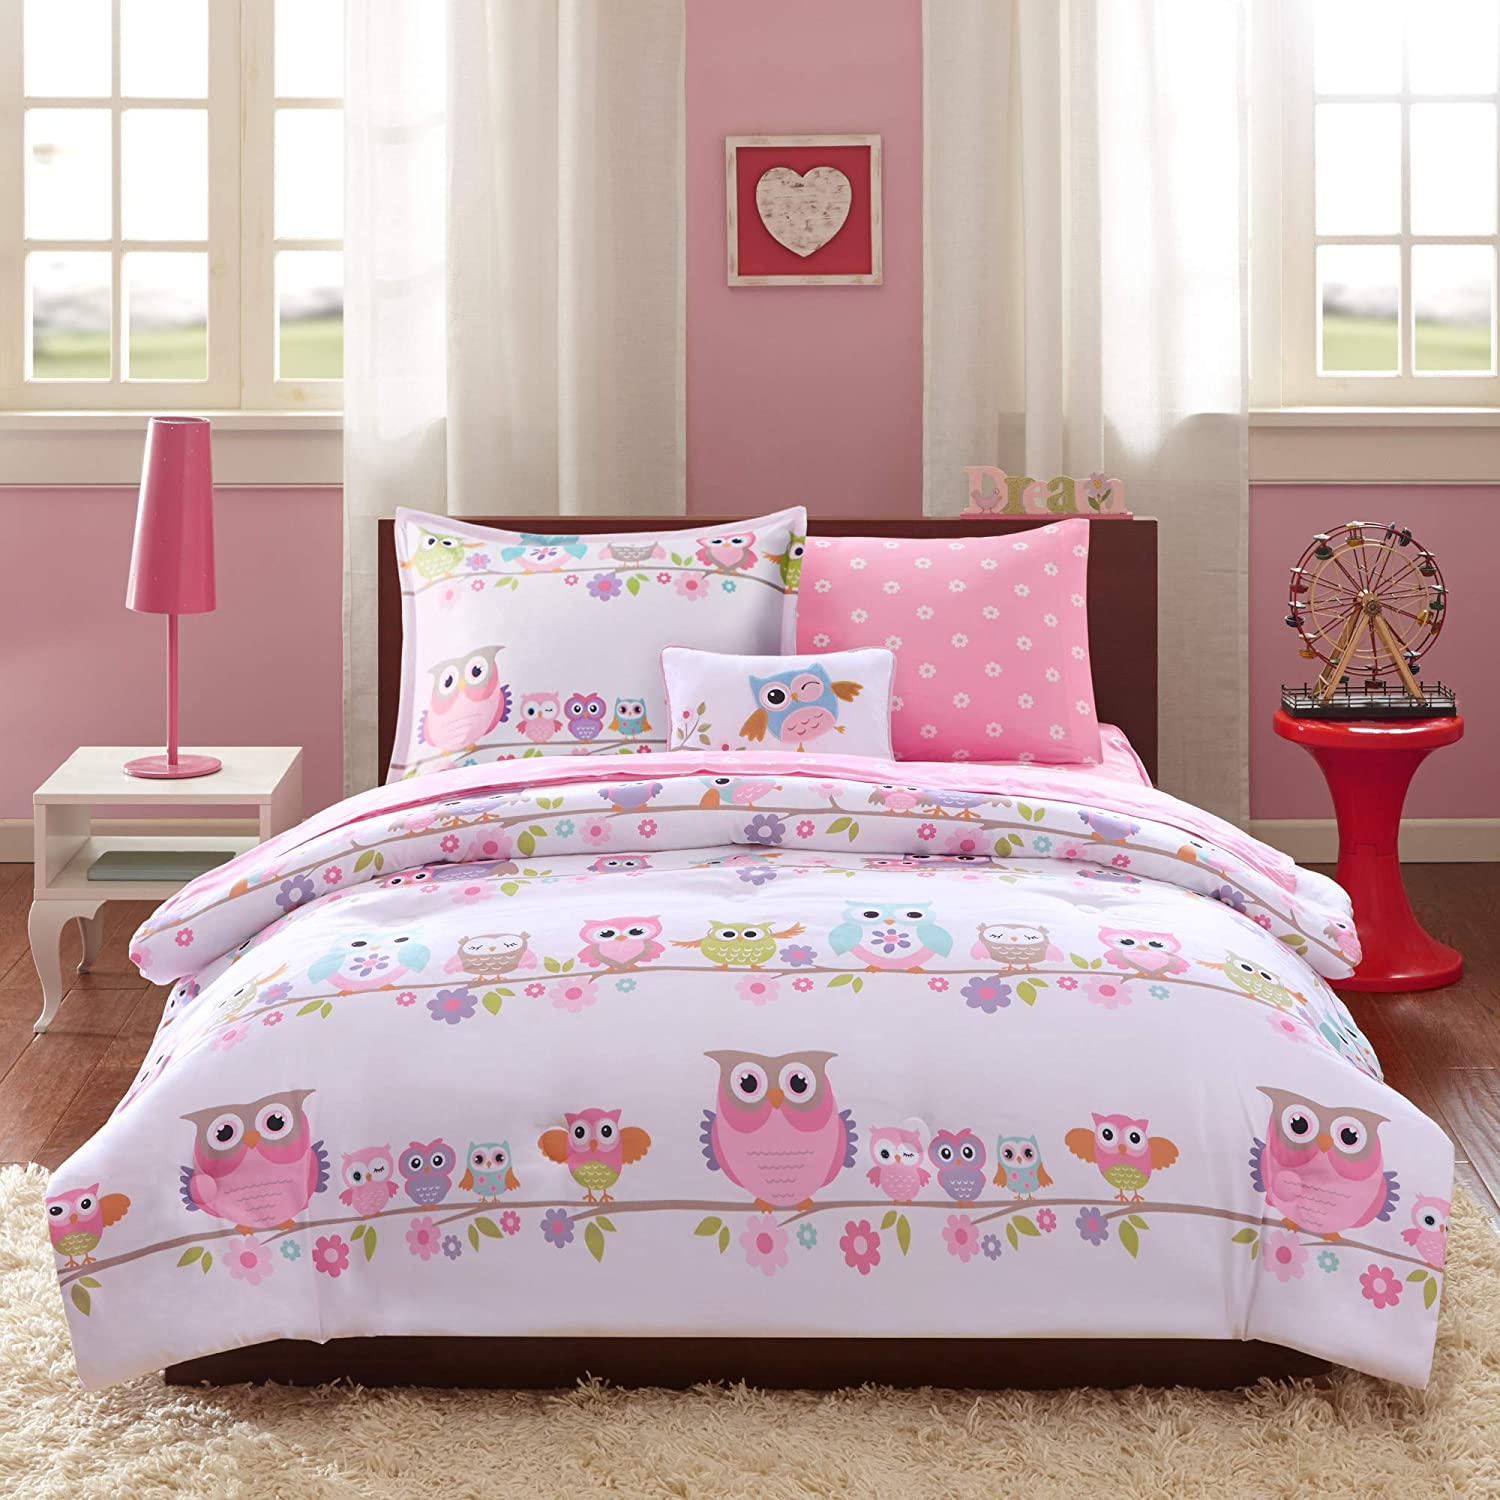 Cute Pink Super Comfortable Kids Bed Sheet Set